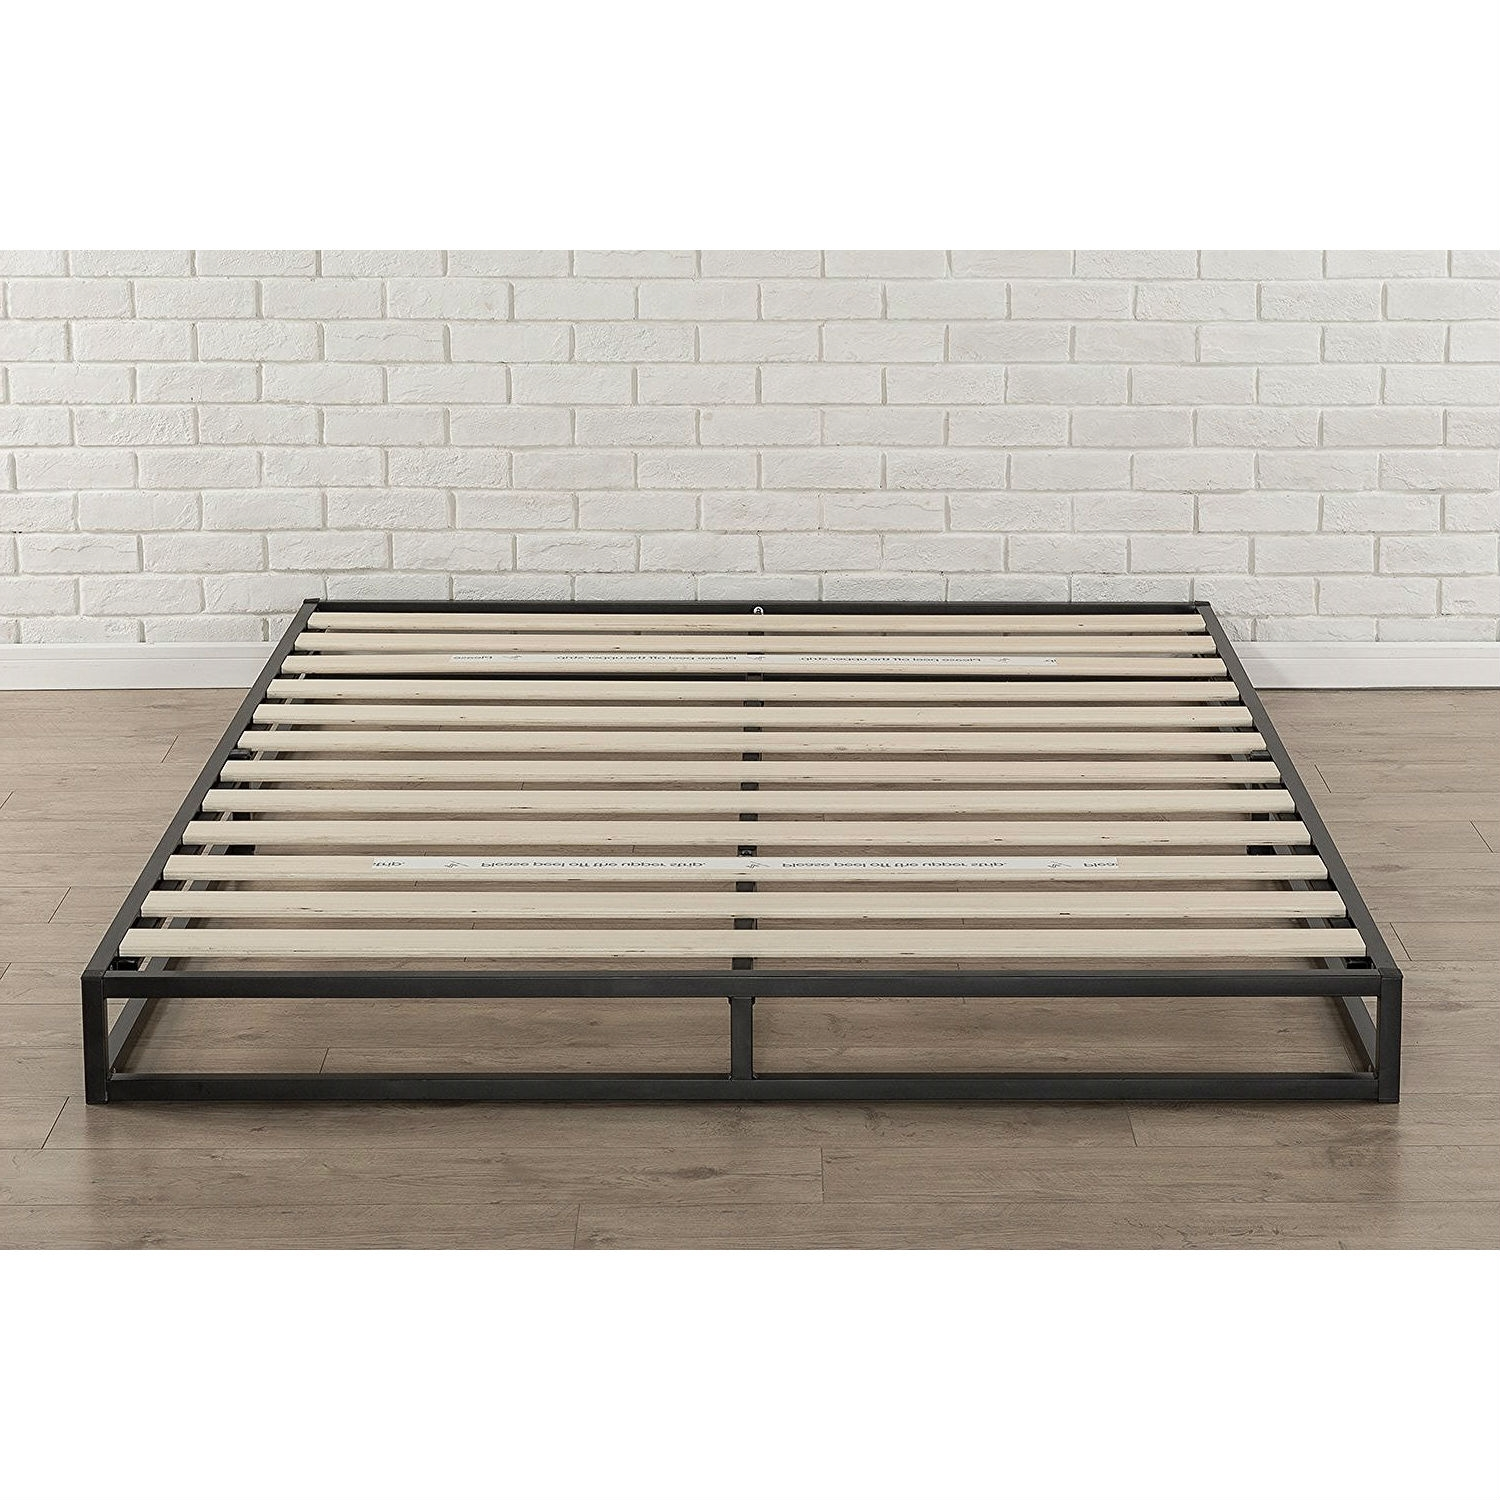 queen size 6-inch low profile metal platform bed frame with wooden